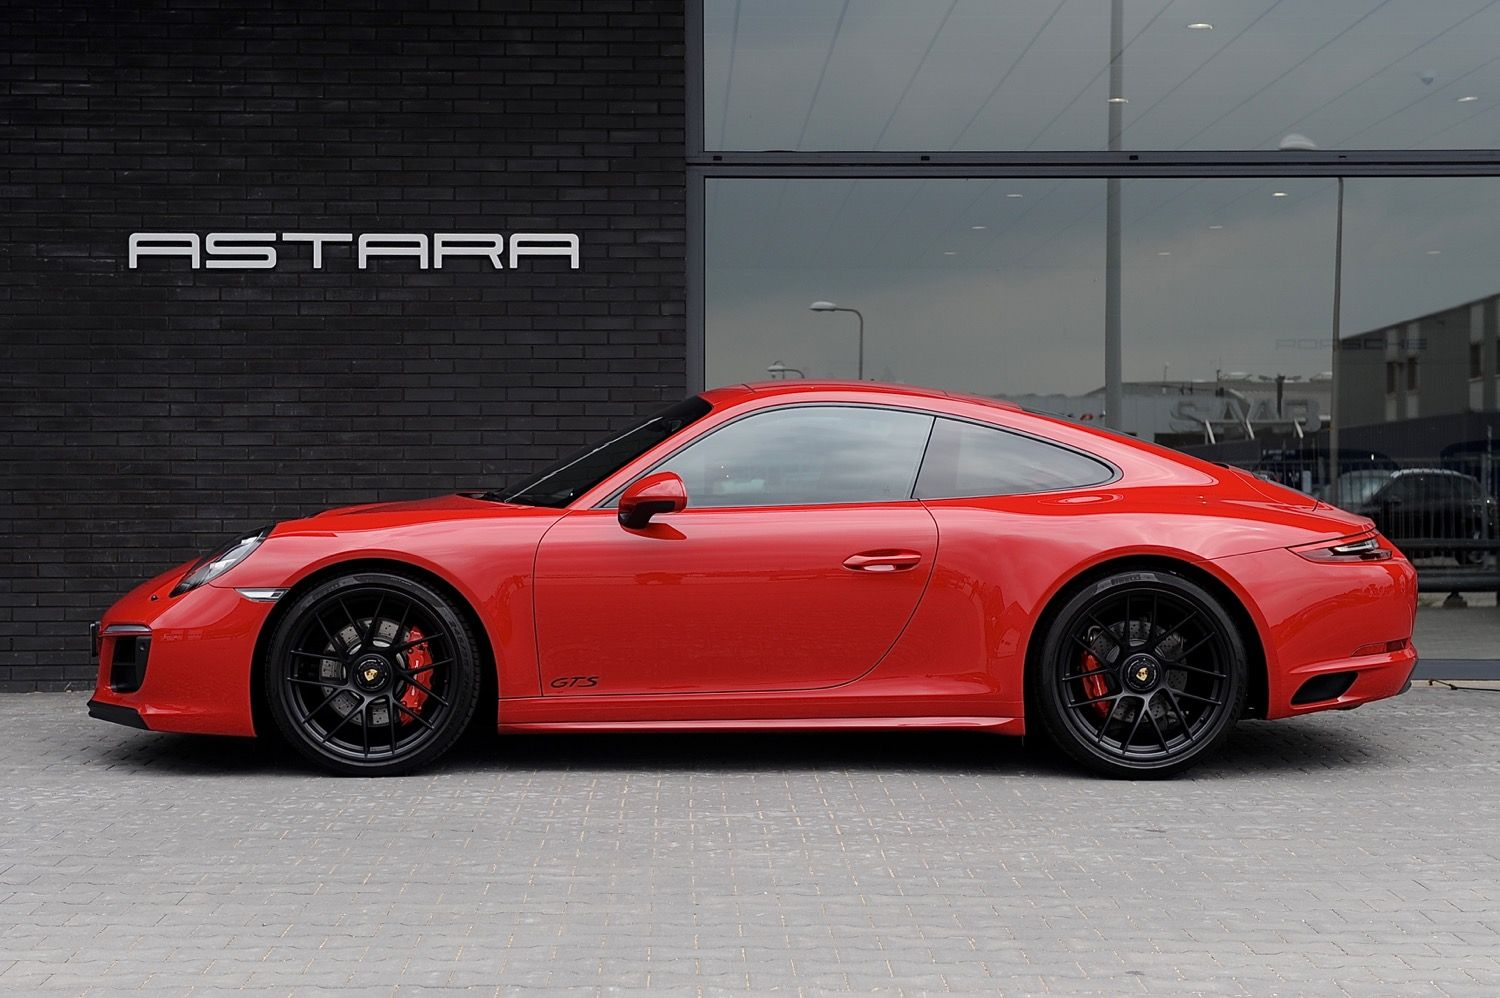 Porsche 991 4 Gts Coupe Built In 2017 Sporty Design In Carmine Red With Black Leather Alcantara And Gts Interior Package Porsche 991 Black Porsche Porsche